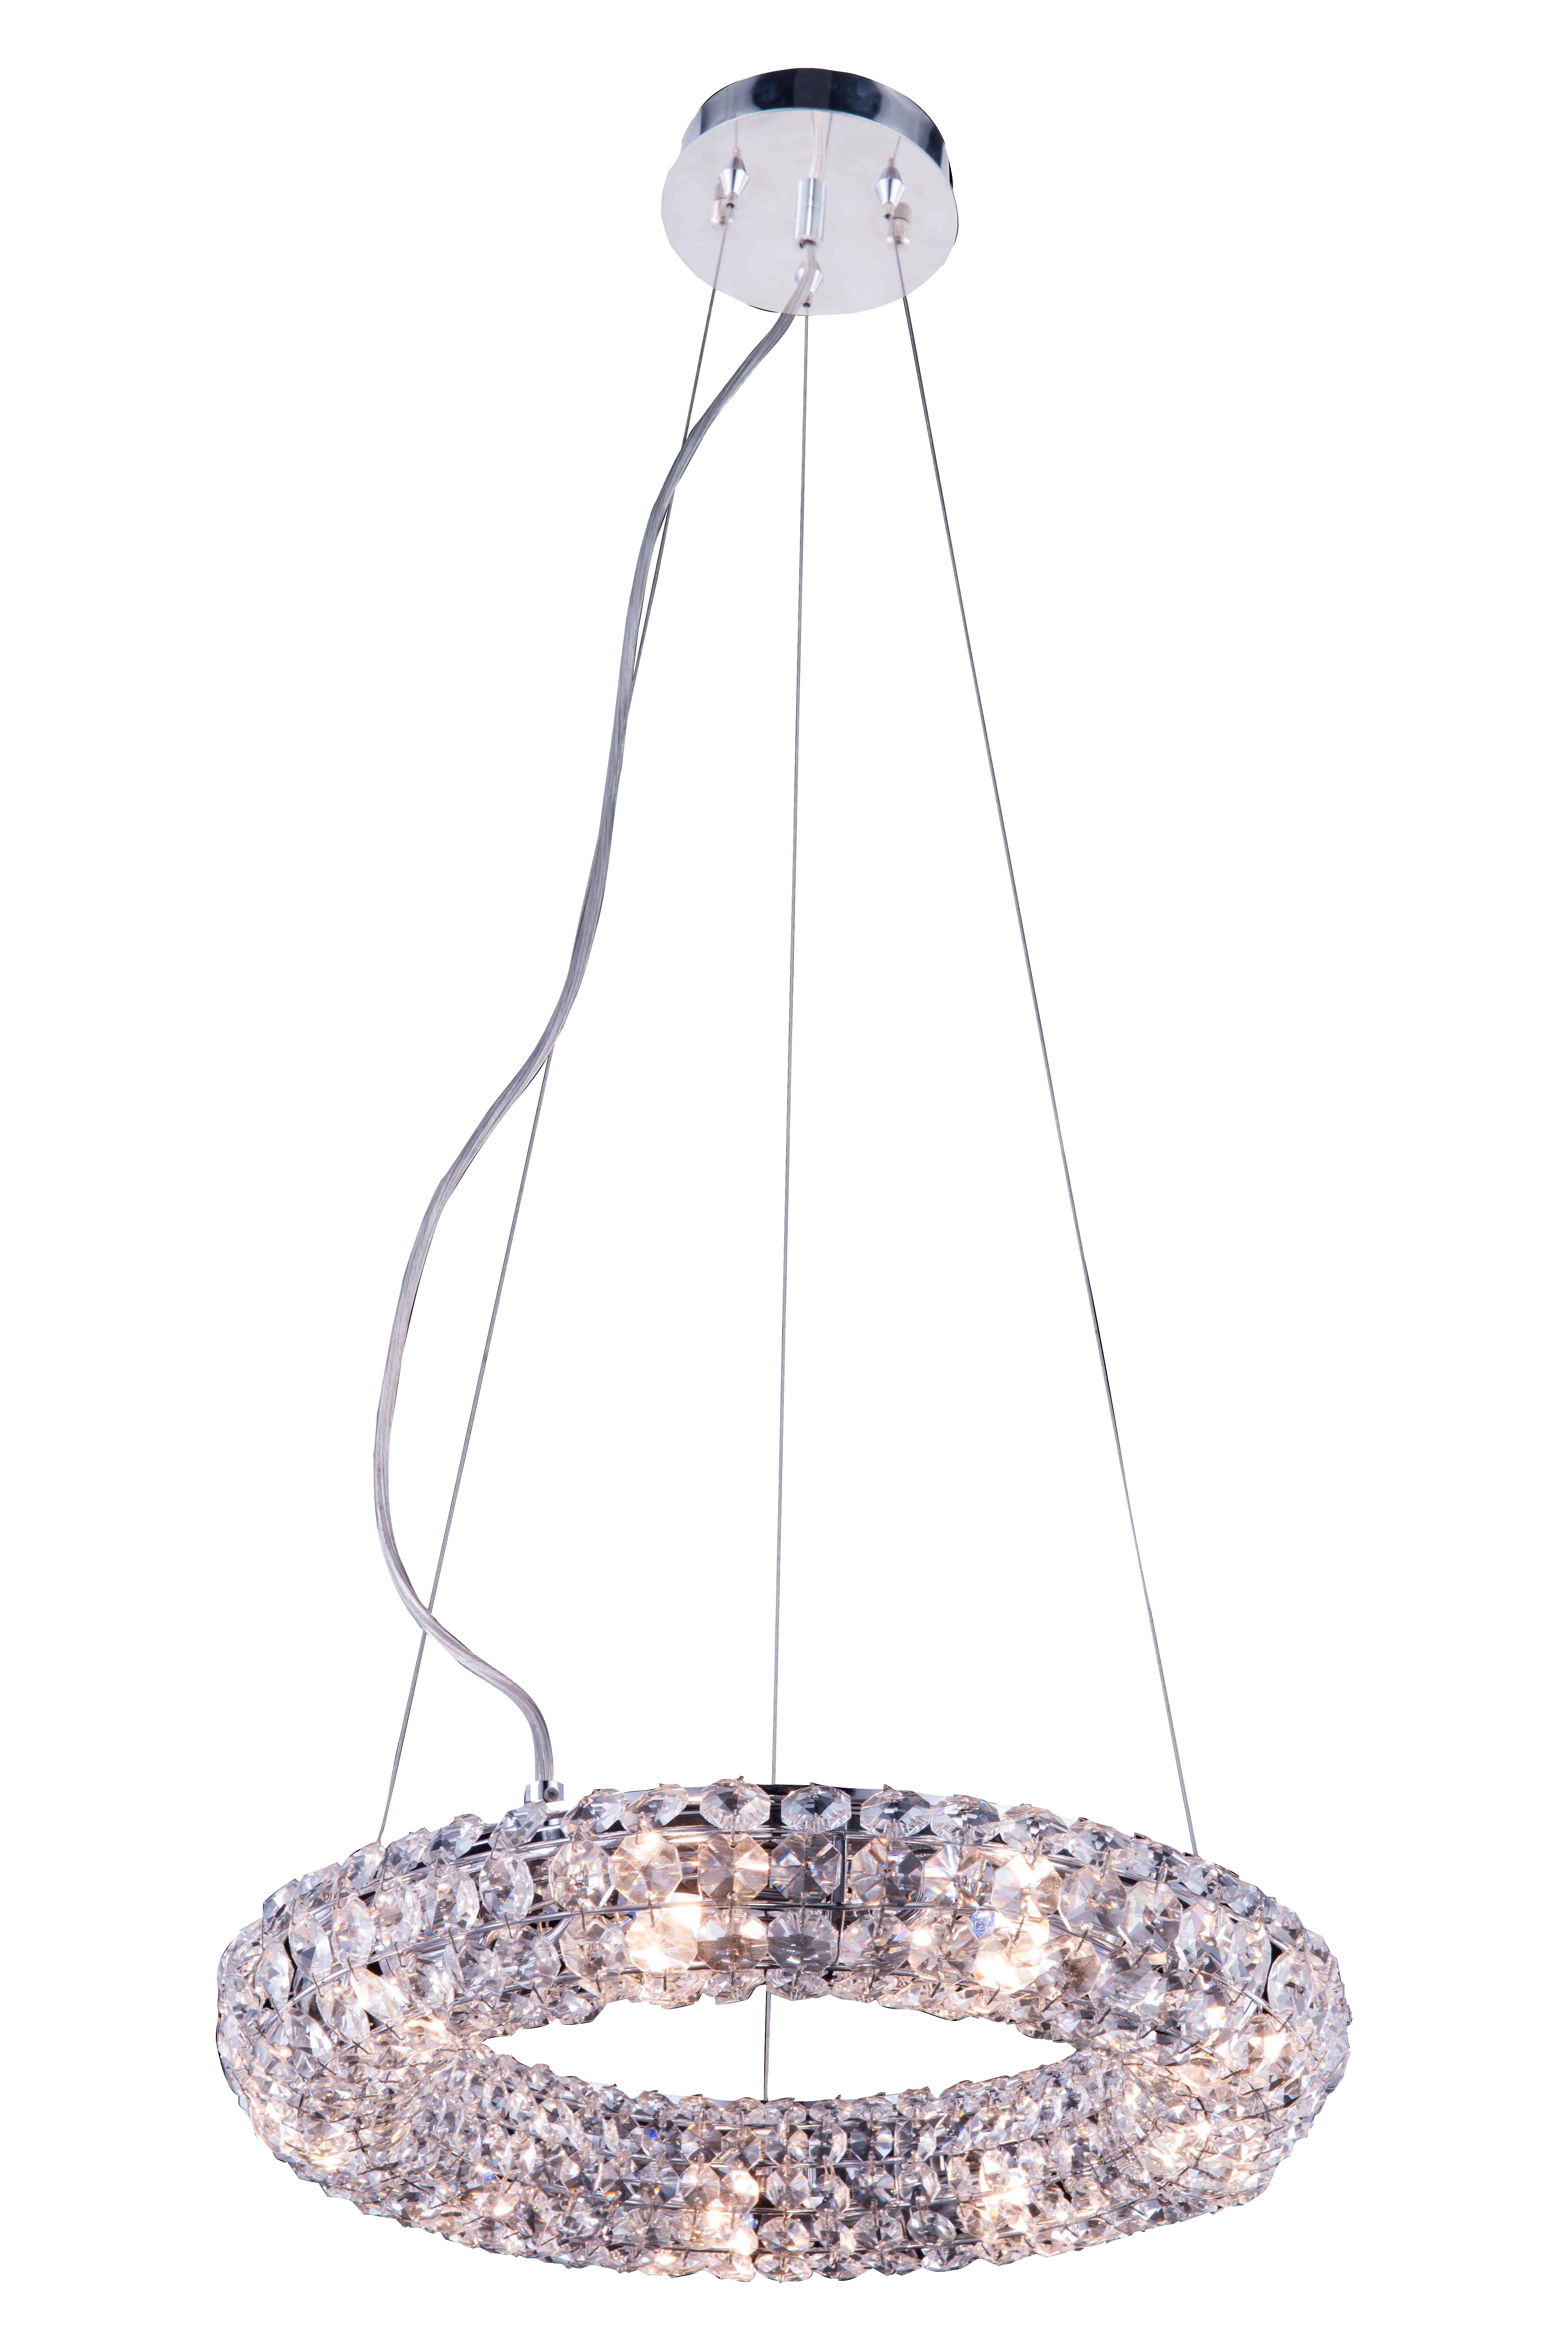 maytoni lamp ceiling kristall gold croce diamant light buying crystal classic at deckenlampe en lichtakzente